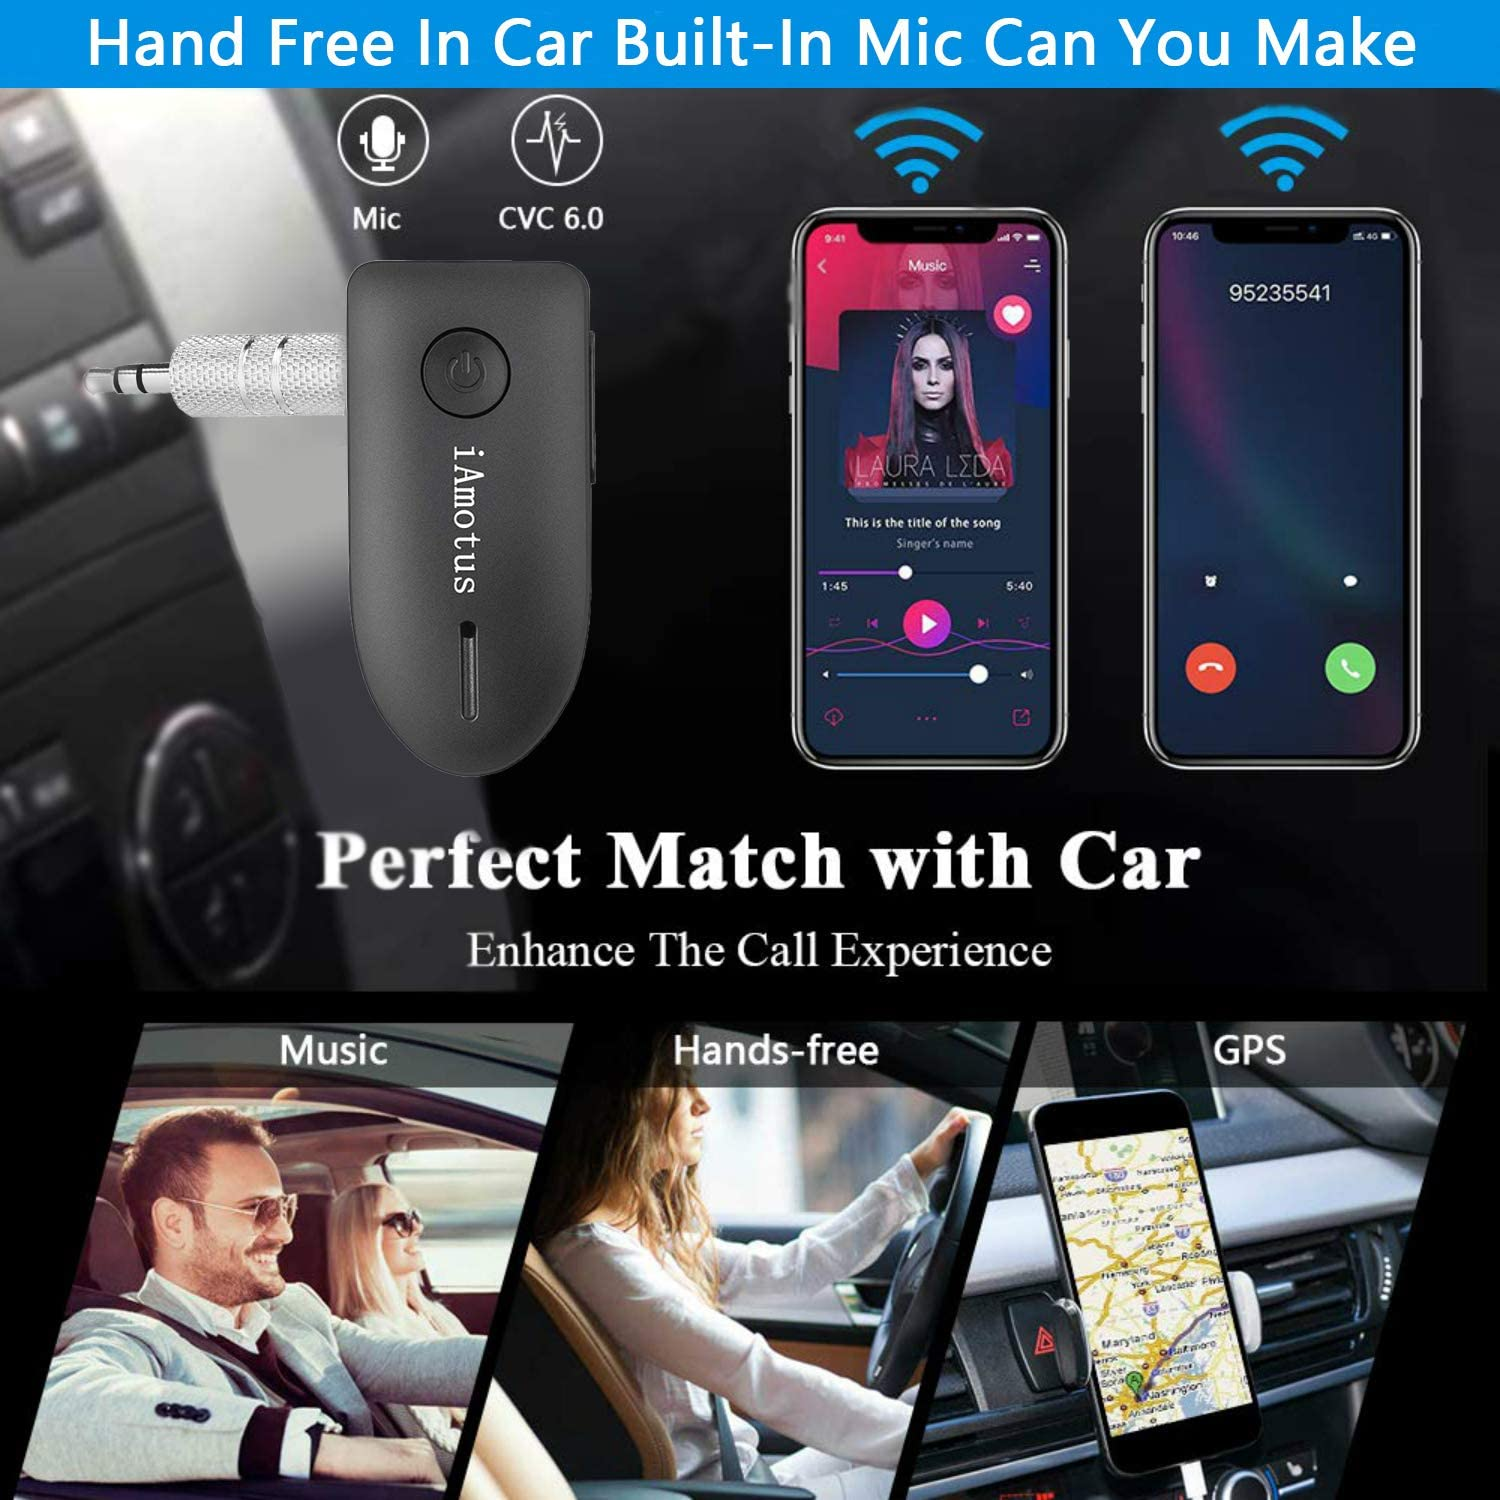 Portable Wireless Bluetooth Adapter /& Hands-Free Car Kits for Home and Car Sound Systems iAmotus Bluetooth 4.2 Audio Receiver A2DP//AVRCP, Built-in Microphone